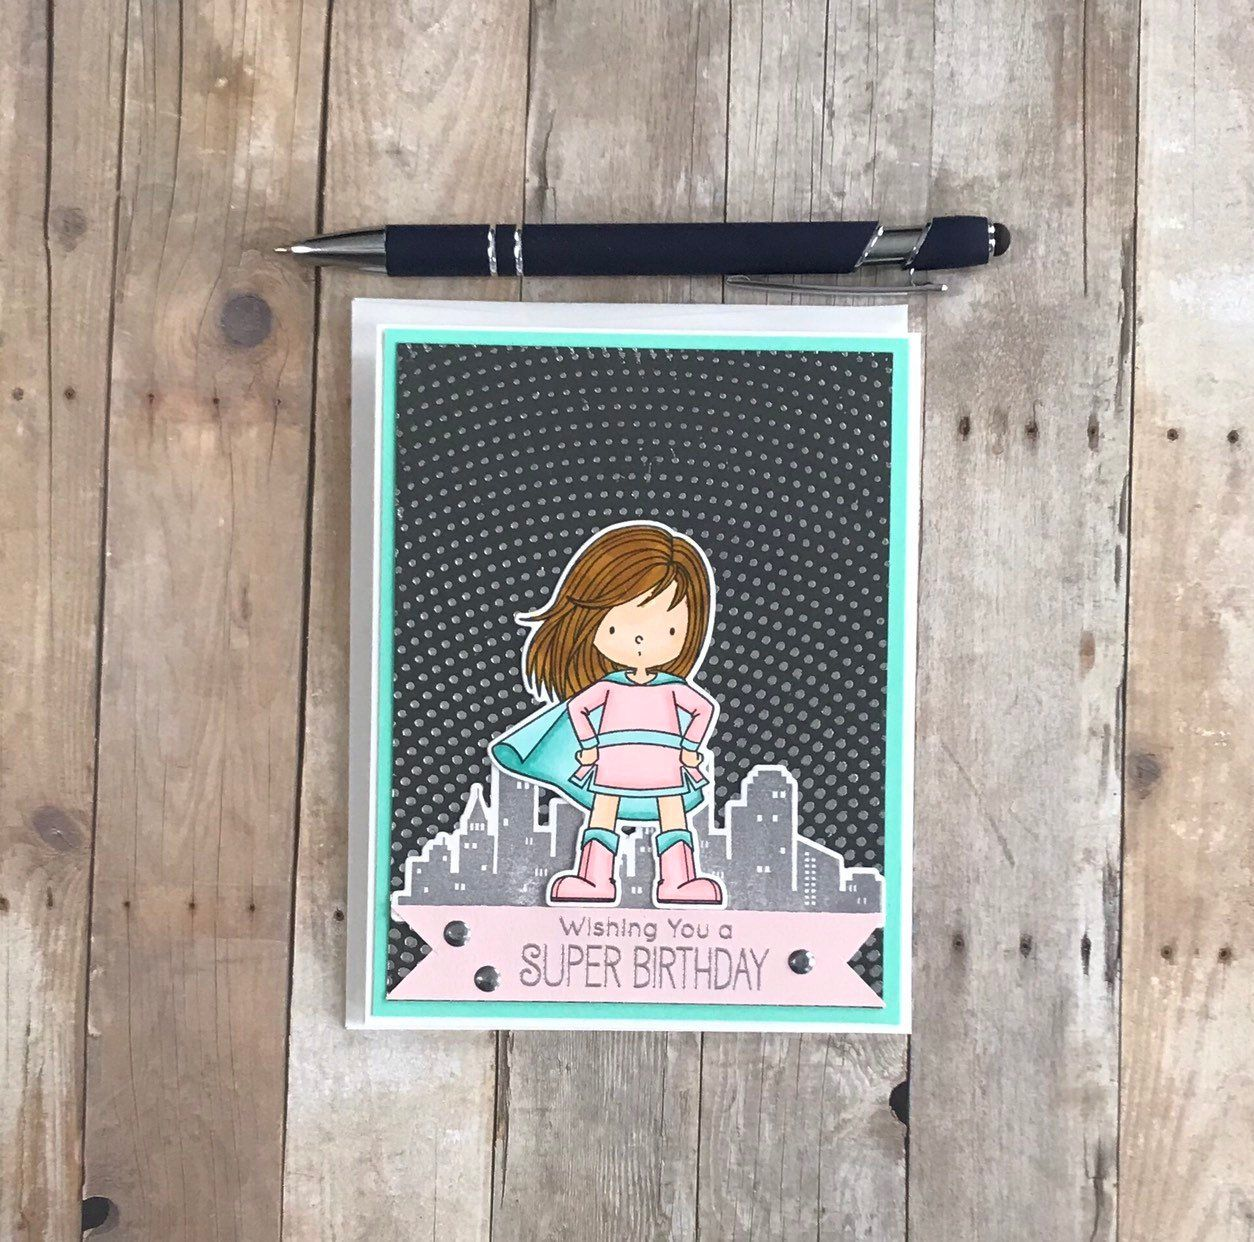 Superhero Birthday Card for Girls, Super Girl Card, Super Birthday Card, Best Selling Items, Superhero Gifts, Birthday Cards for Her #superherogifts